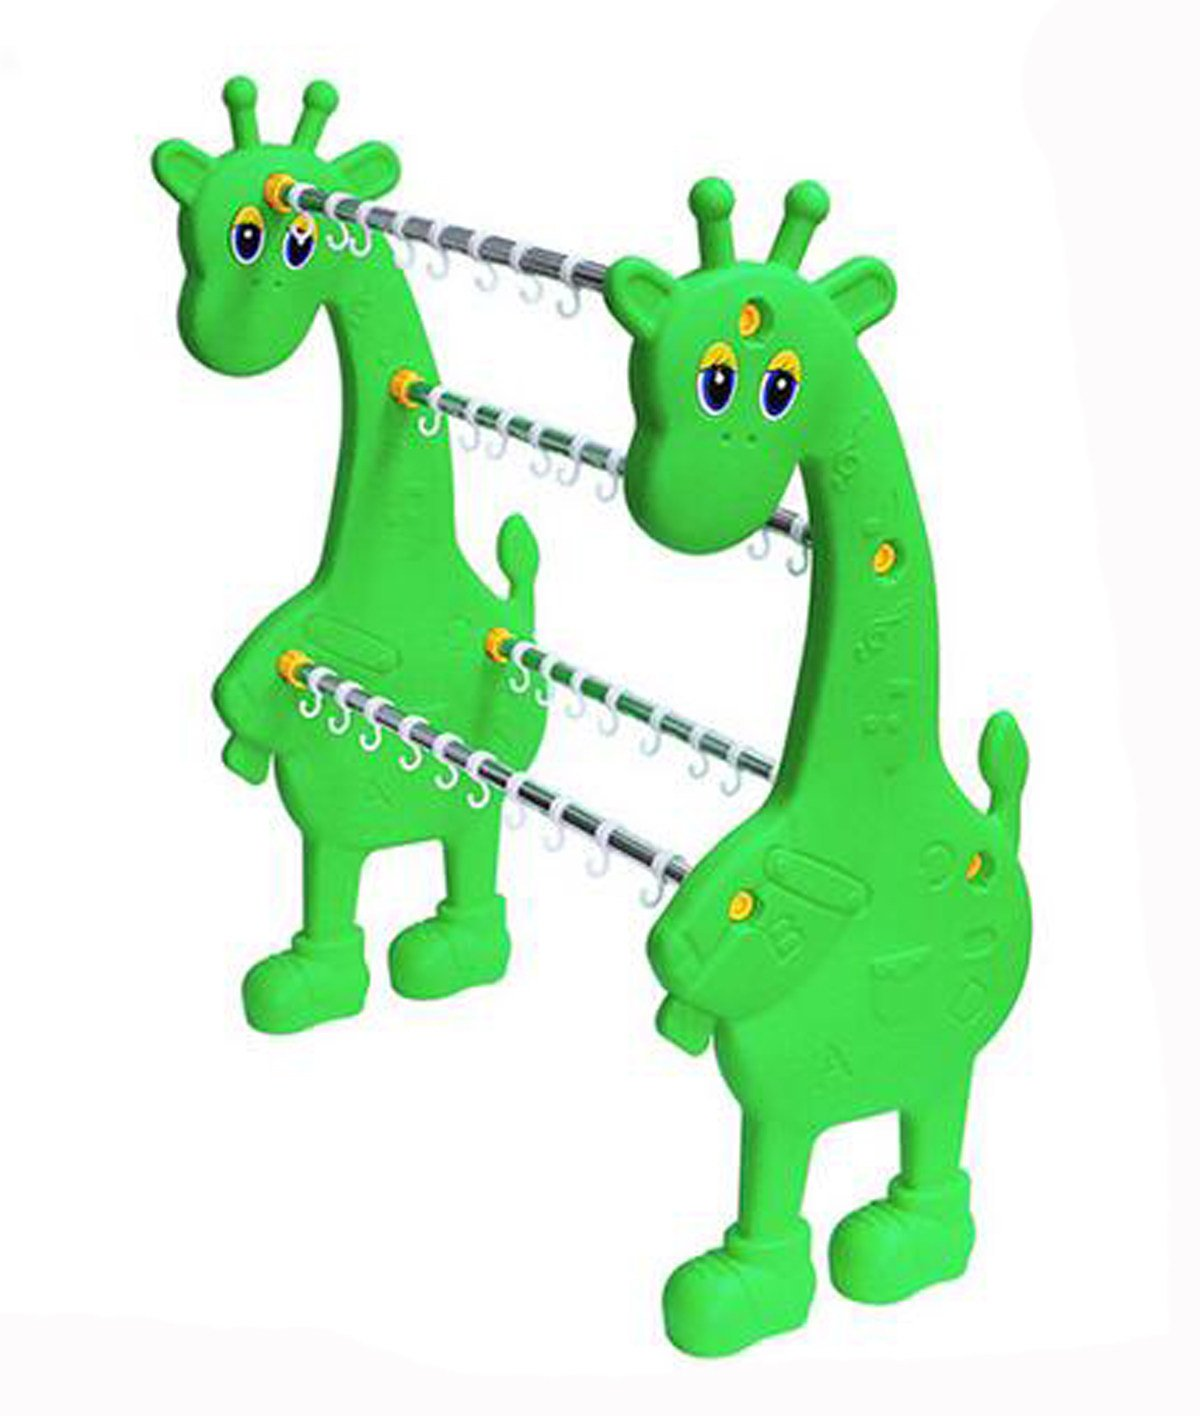 Kindergarten Cartoon Animal Modeling Plastic Towel Rack Items Classification Rack Shelves,Green